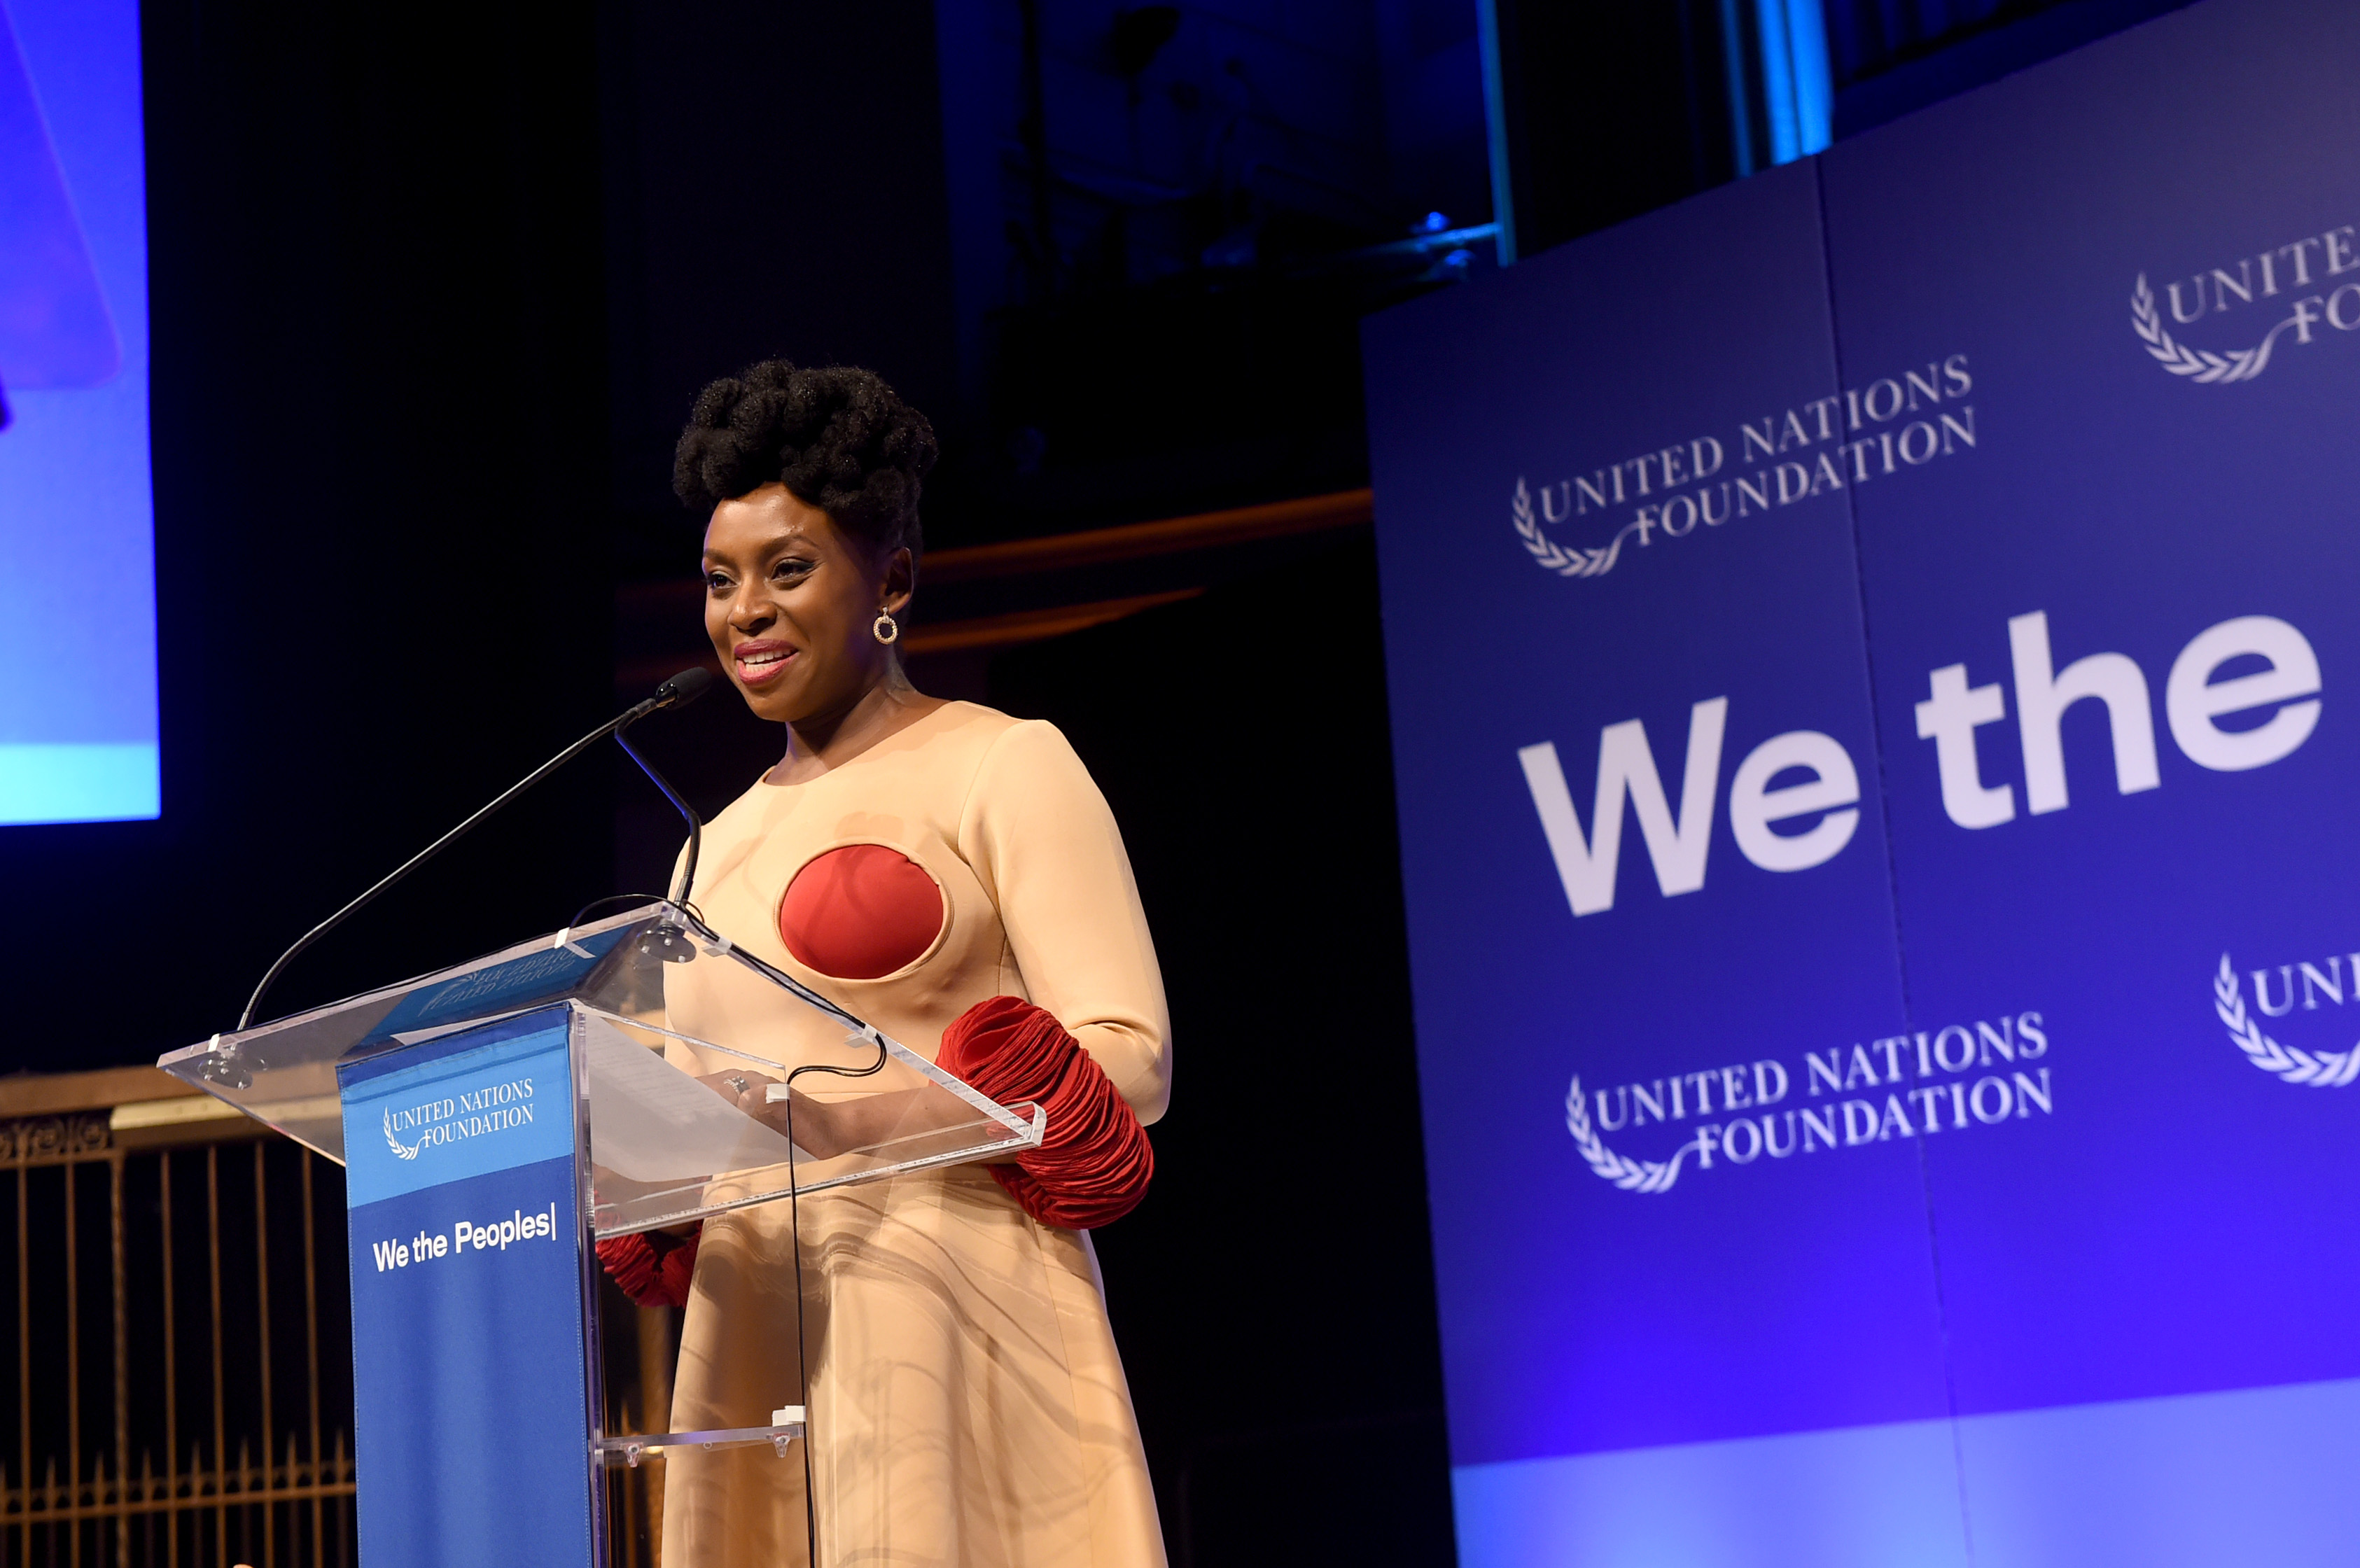 Chimamanda Adichie becomes First Nigerian to Receive UN Foundation Global Leadership Award